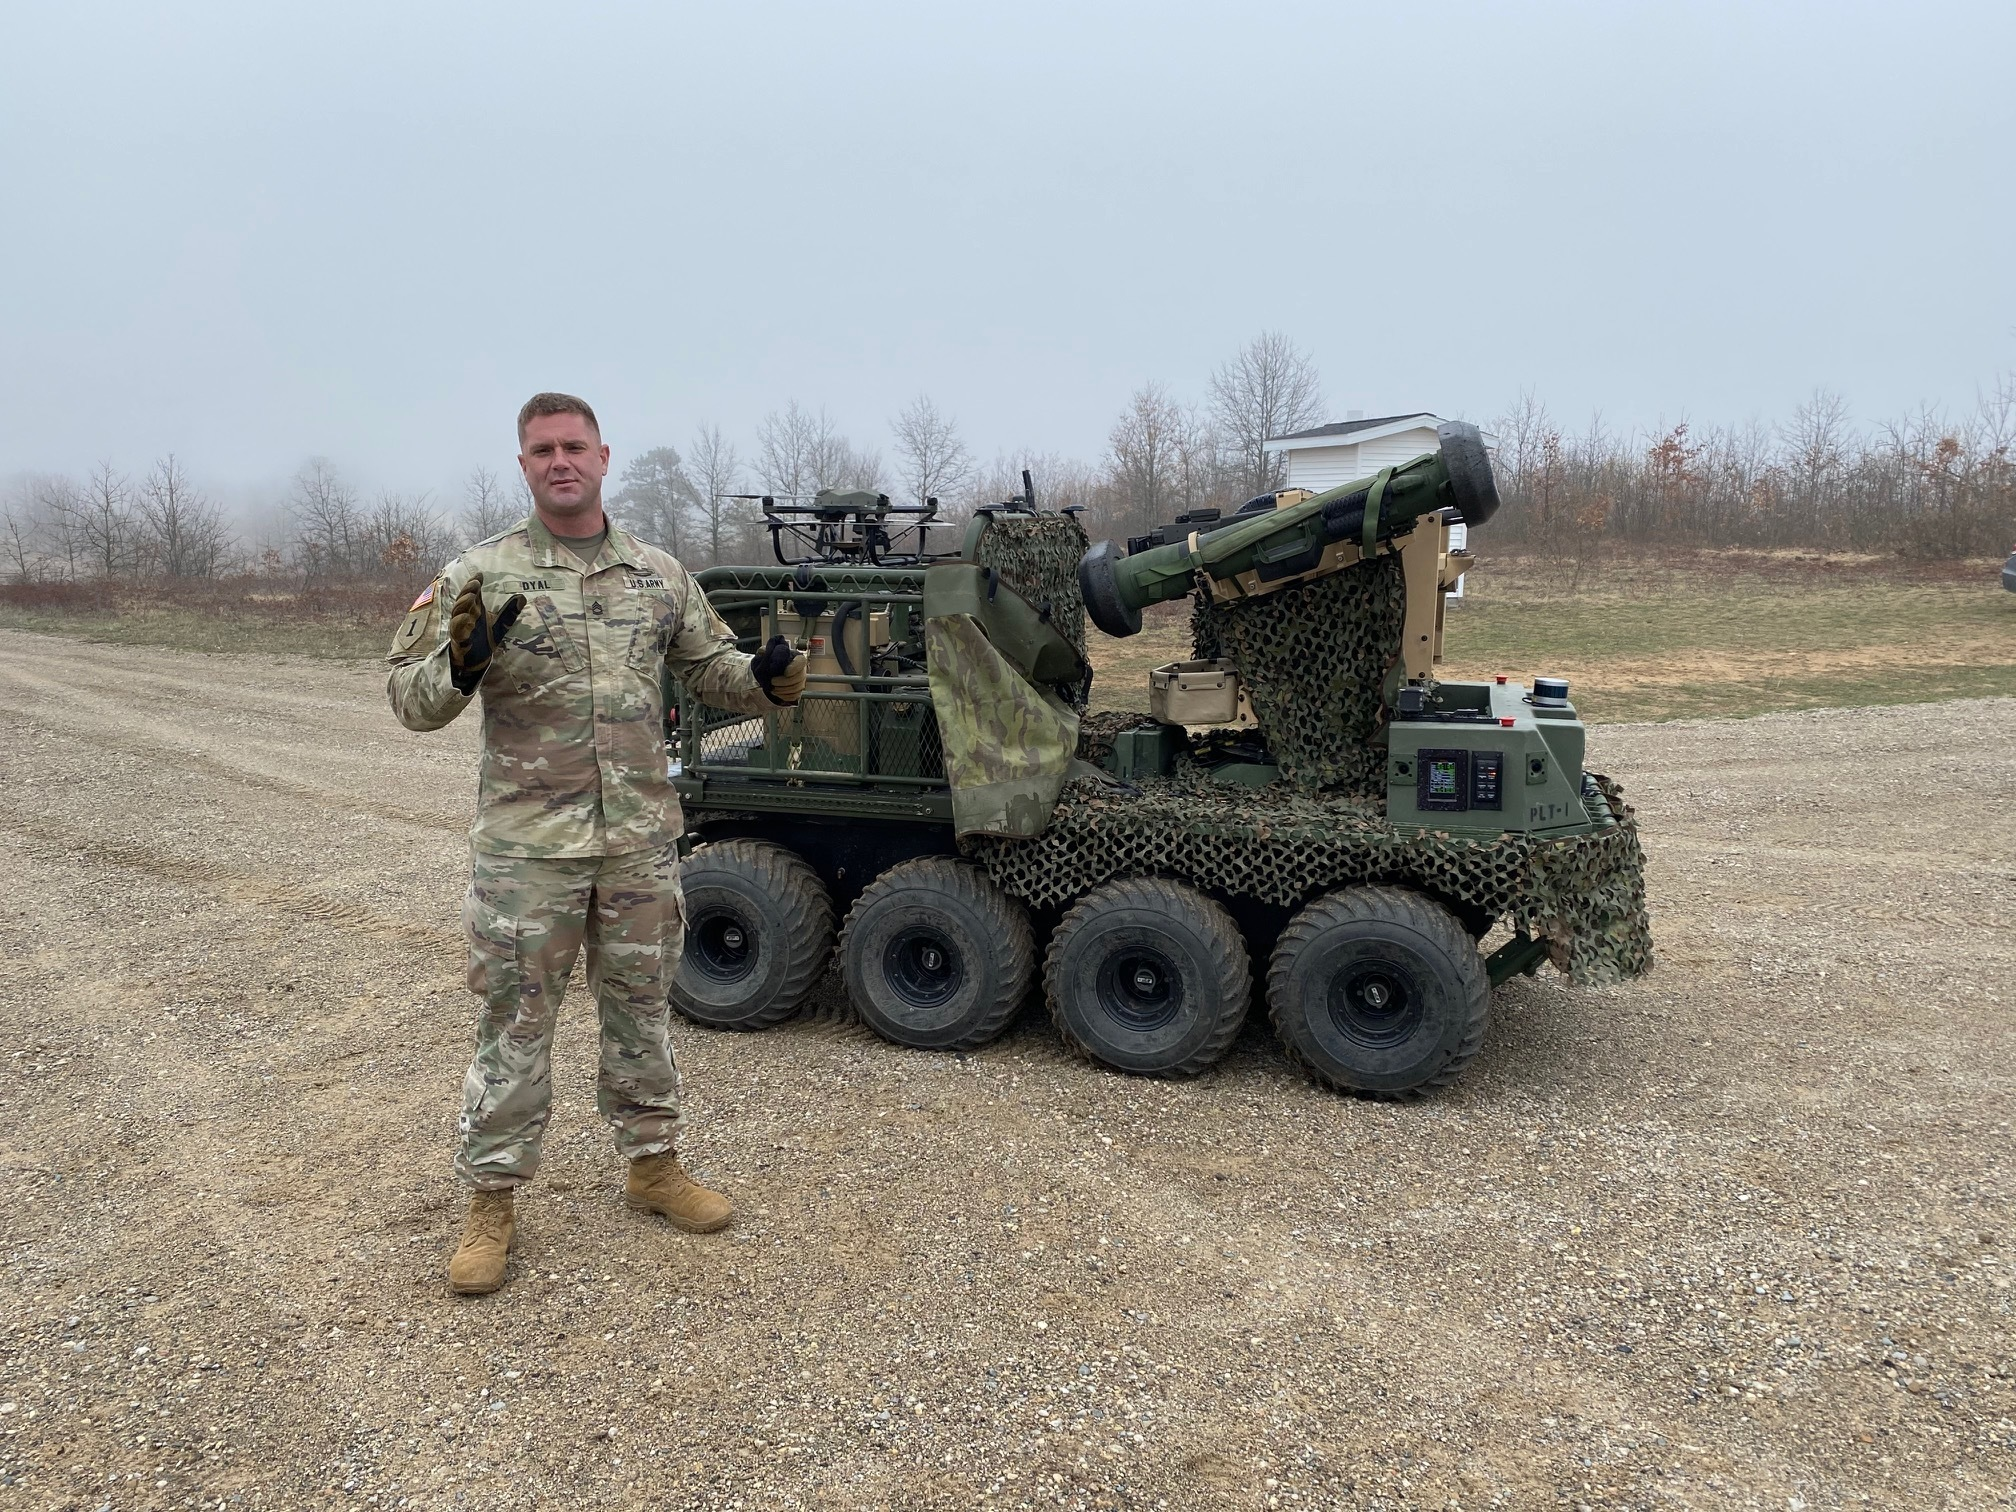 Sgt. 1st Class Richard Dyal discusses what robots can bring to light forces at Camp Grayling, Michigan, April 28, 2021. (Dan Heaton/Army)